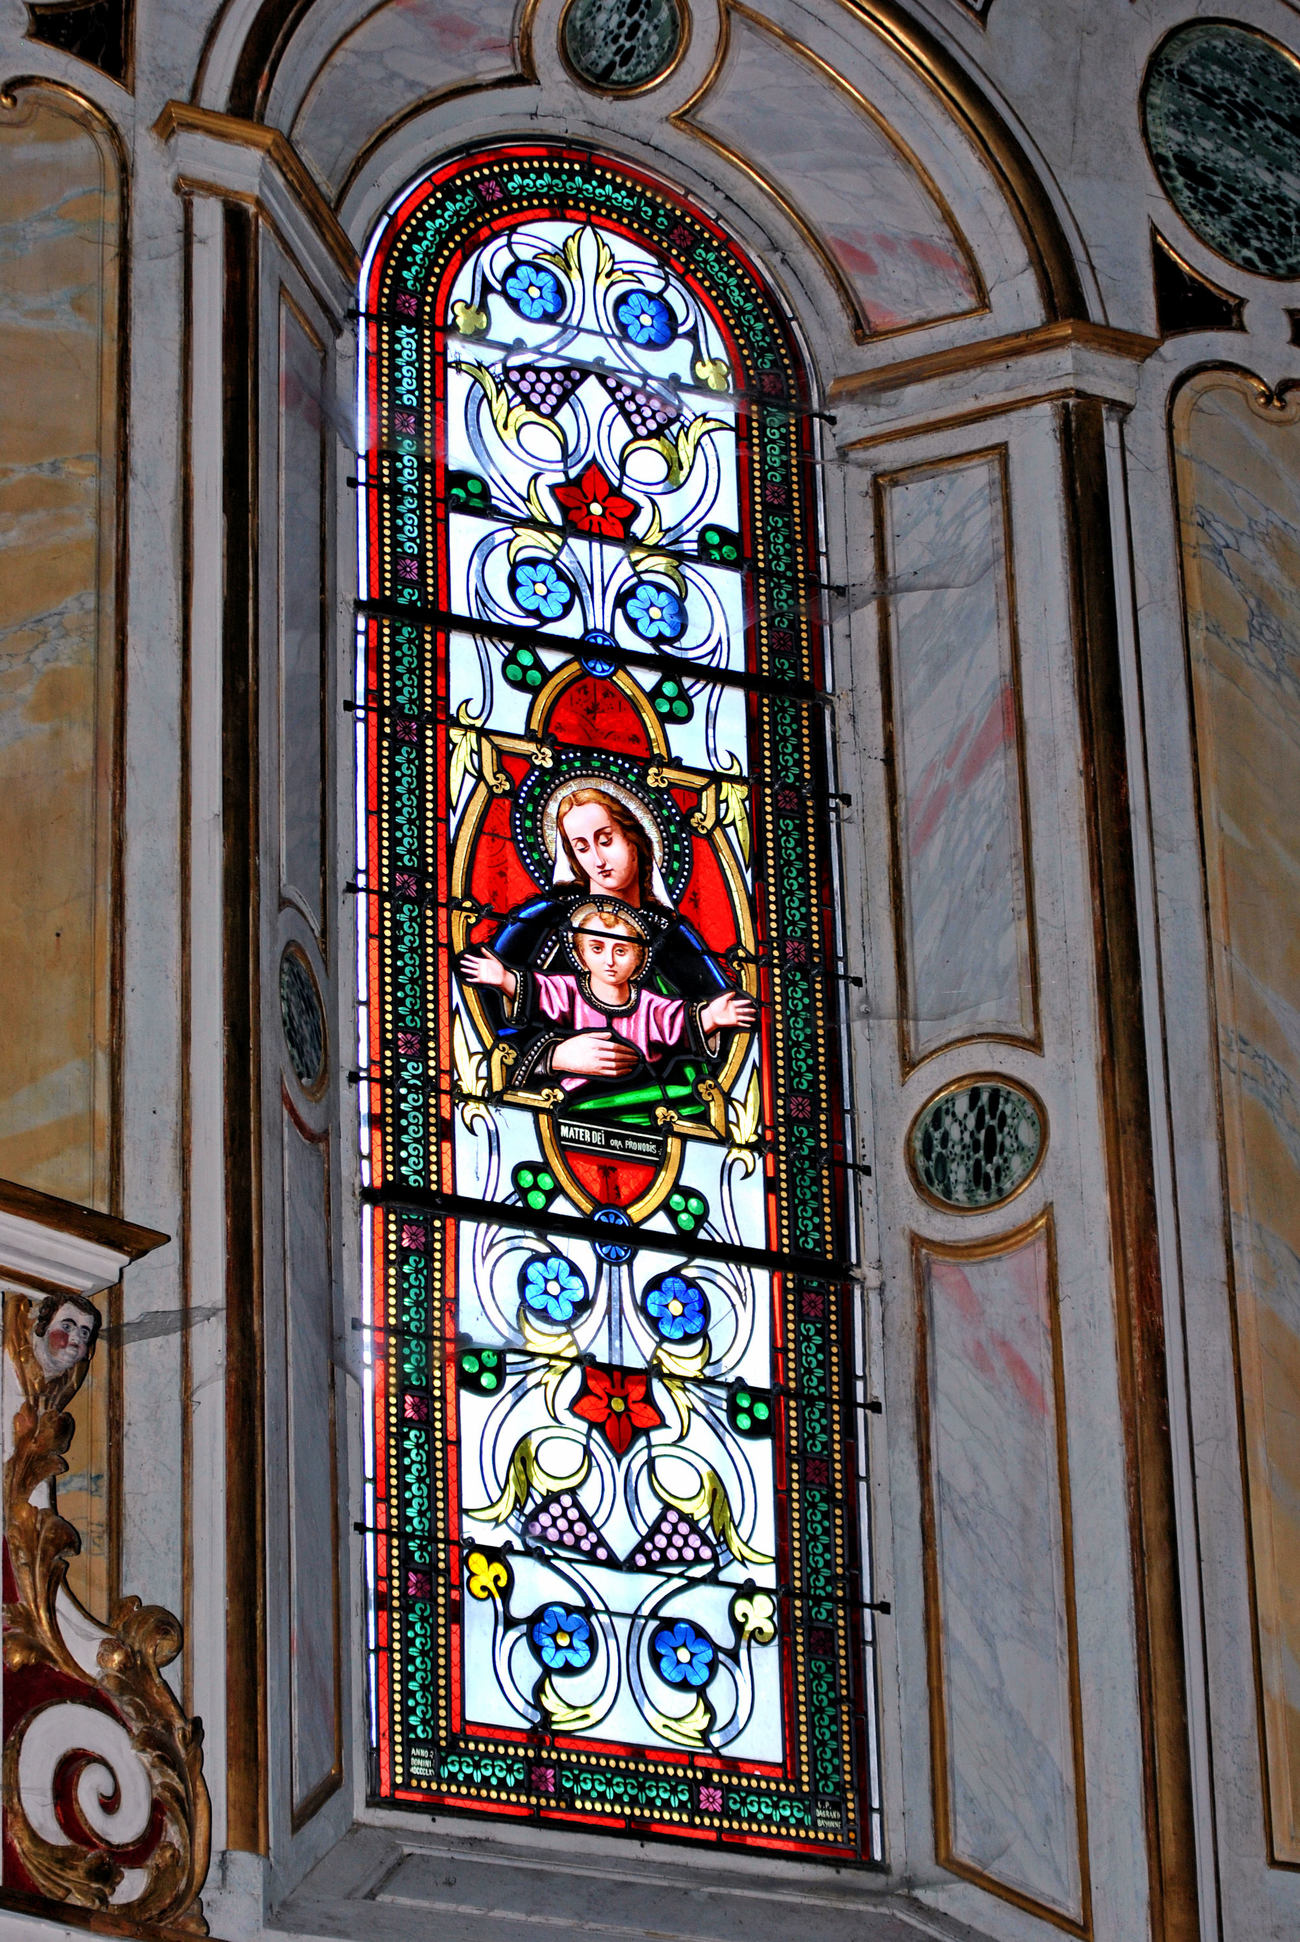 Vitrail - Stained glass window 13 by kordouane